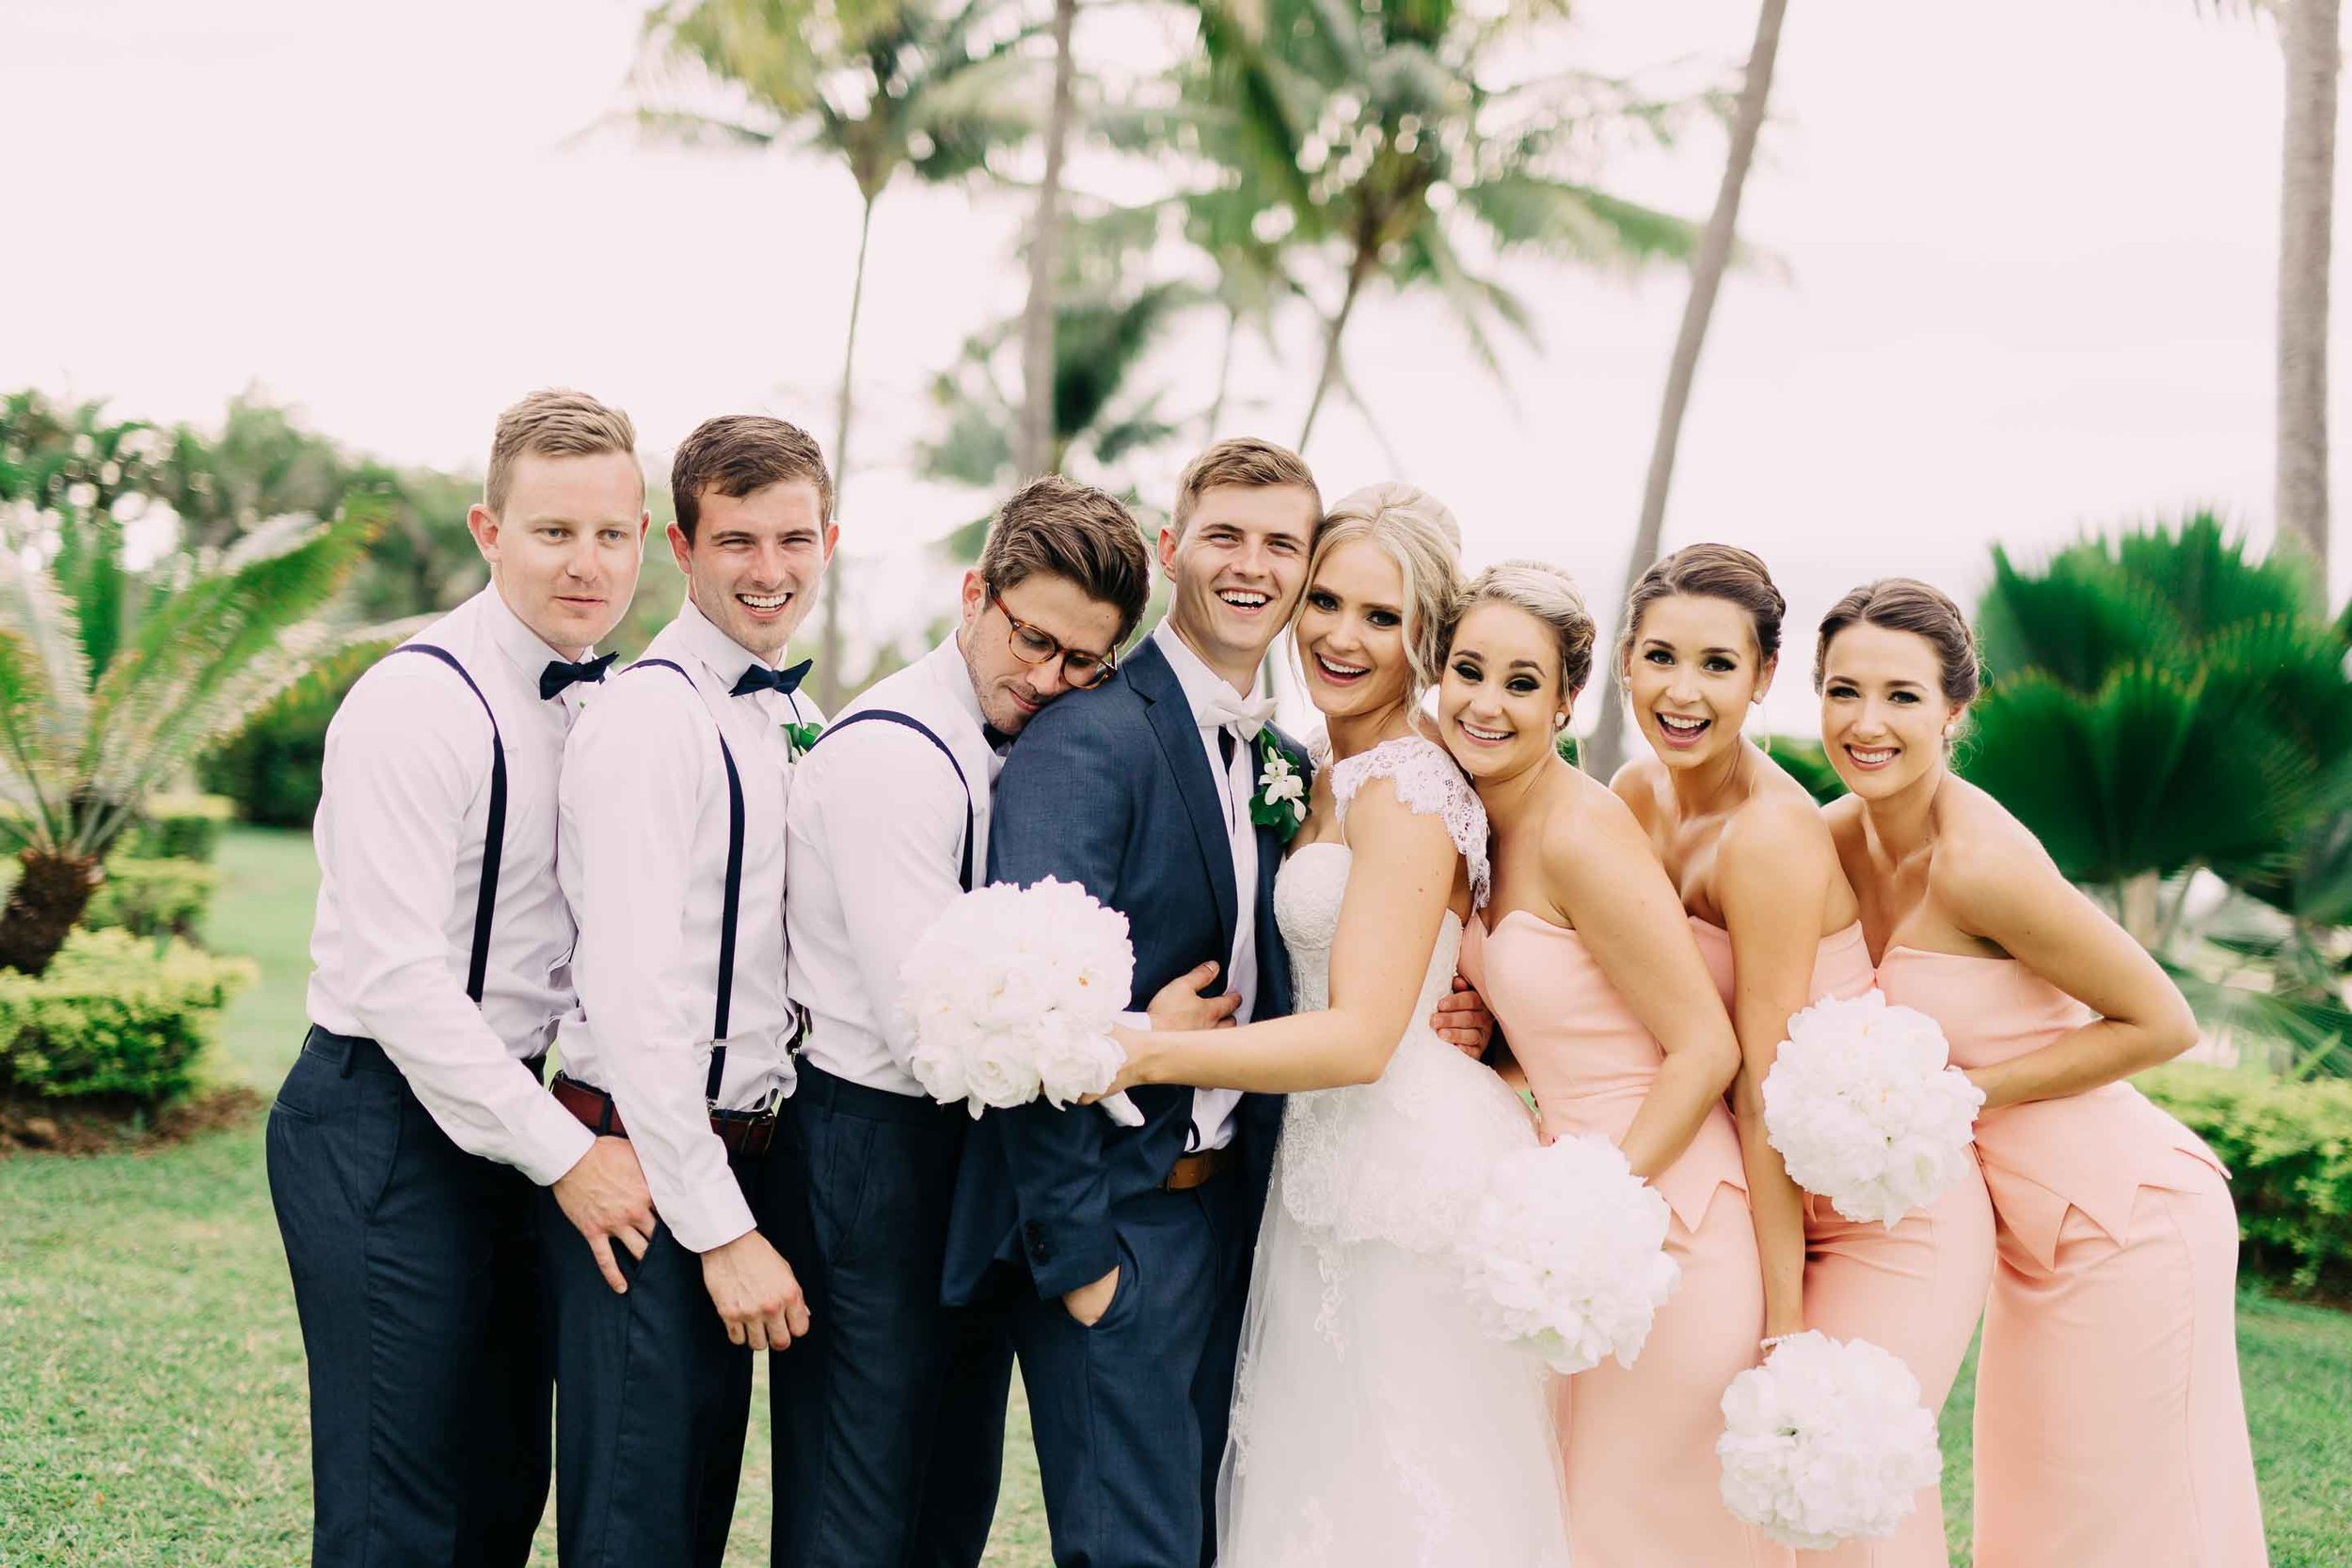 Stylish Bridal Party with white bouquets and coral coloured bridesmaids dresses.